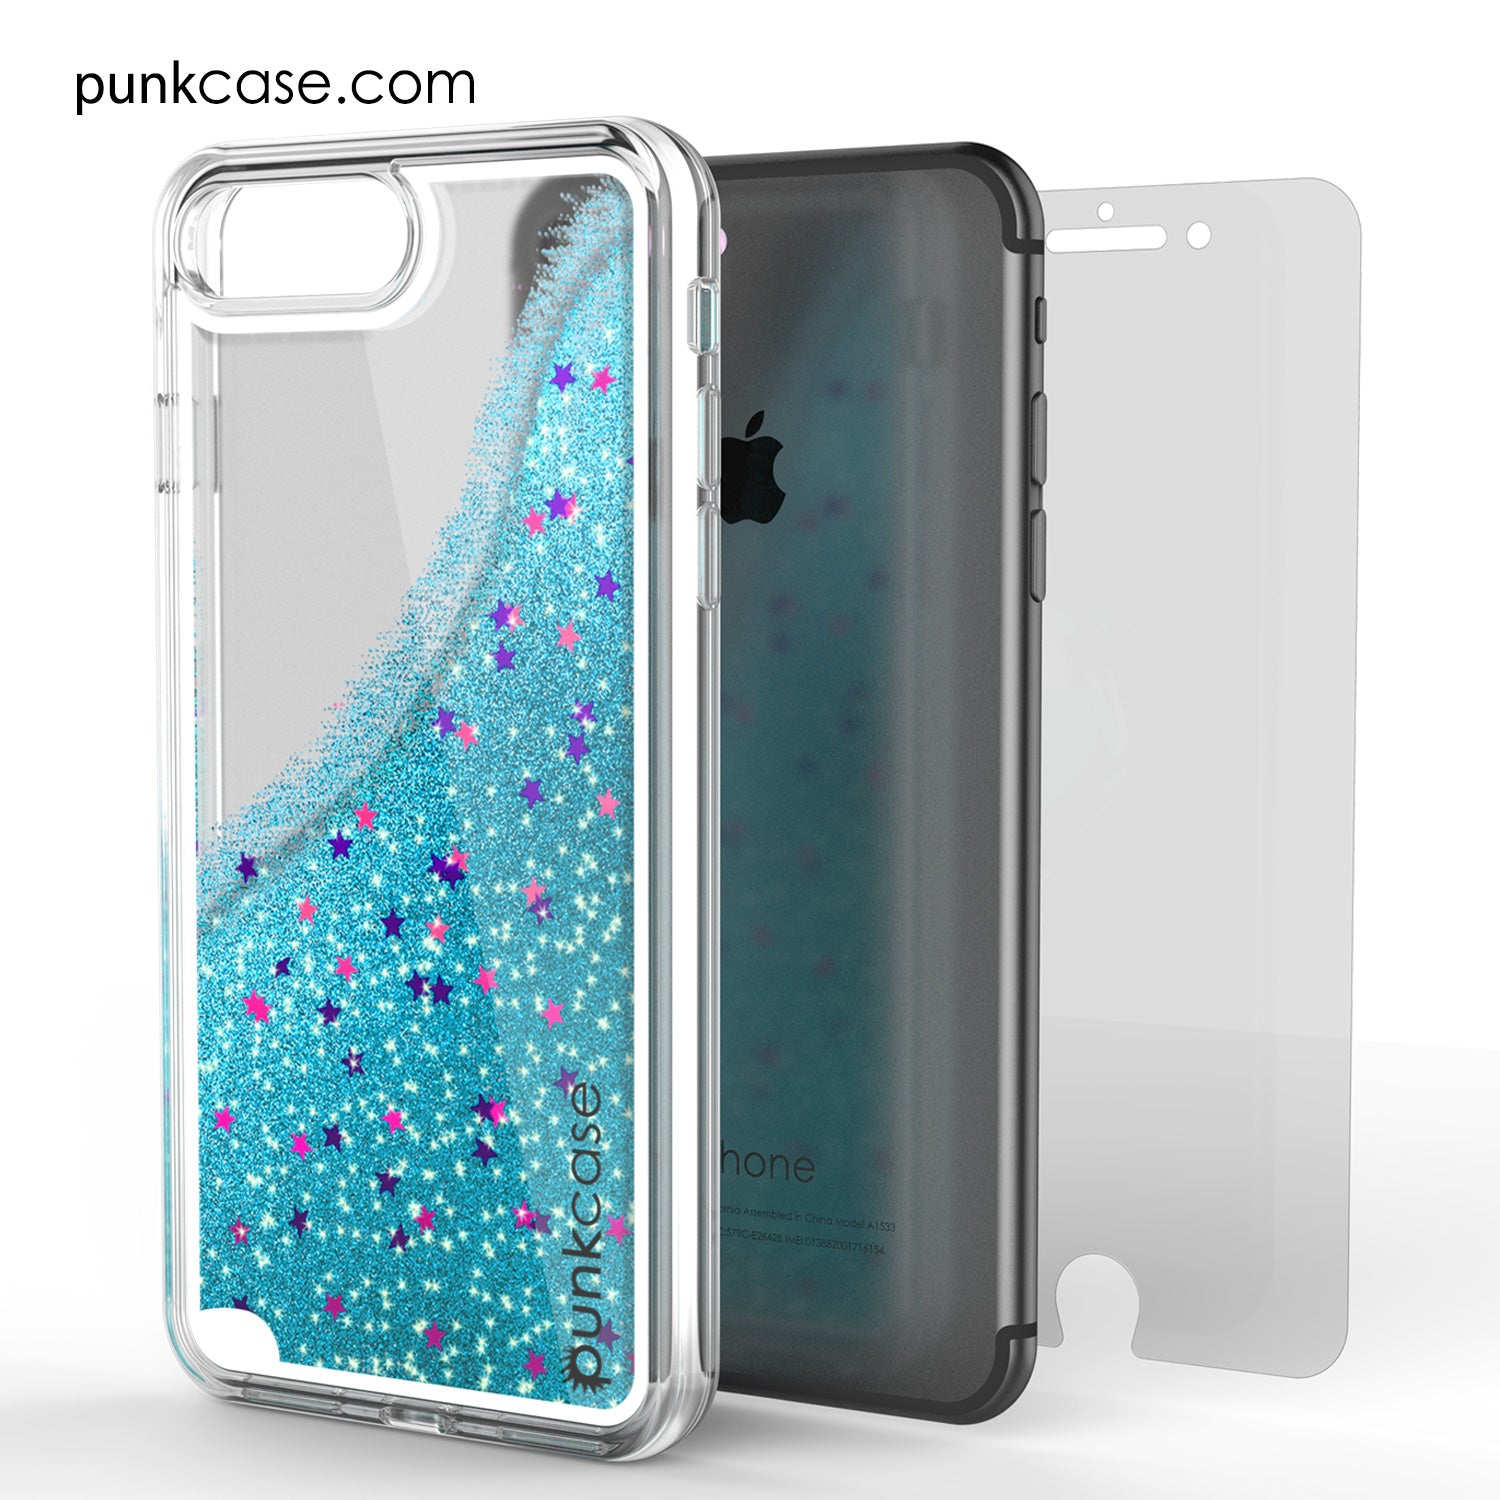 iPhone 7+Plus Case, PunkCase LIQUID Teal Series, Protective Dual Layer Floating Glitter Cover